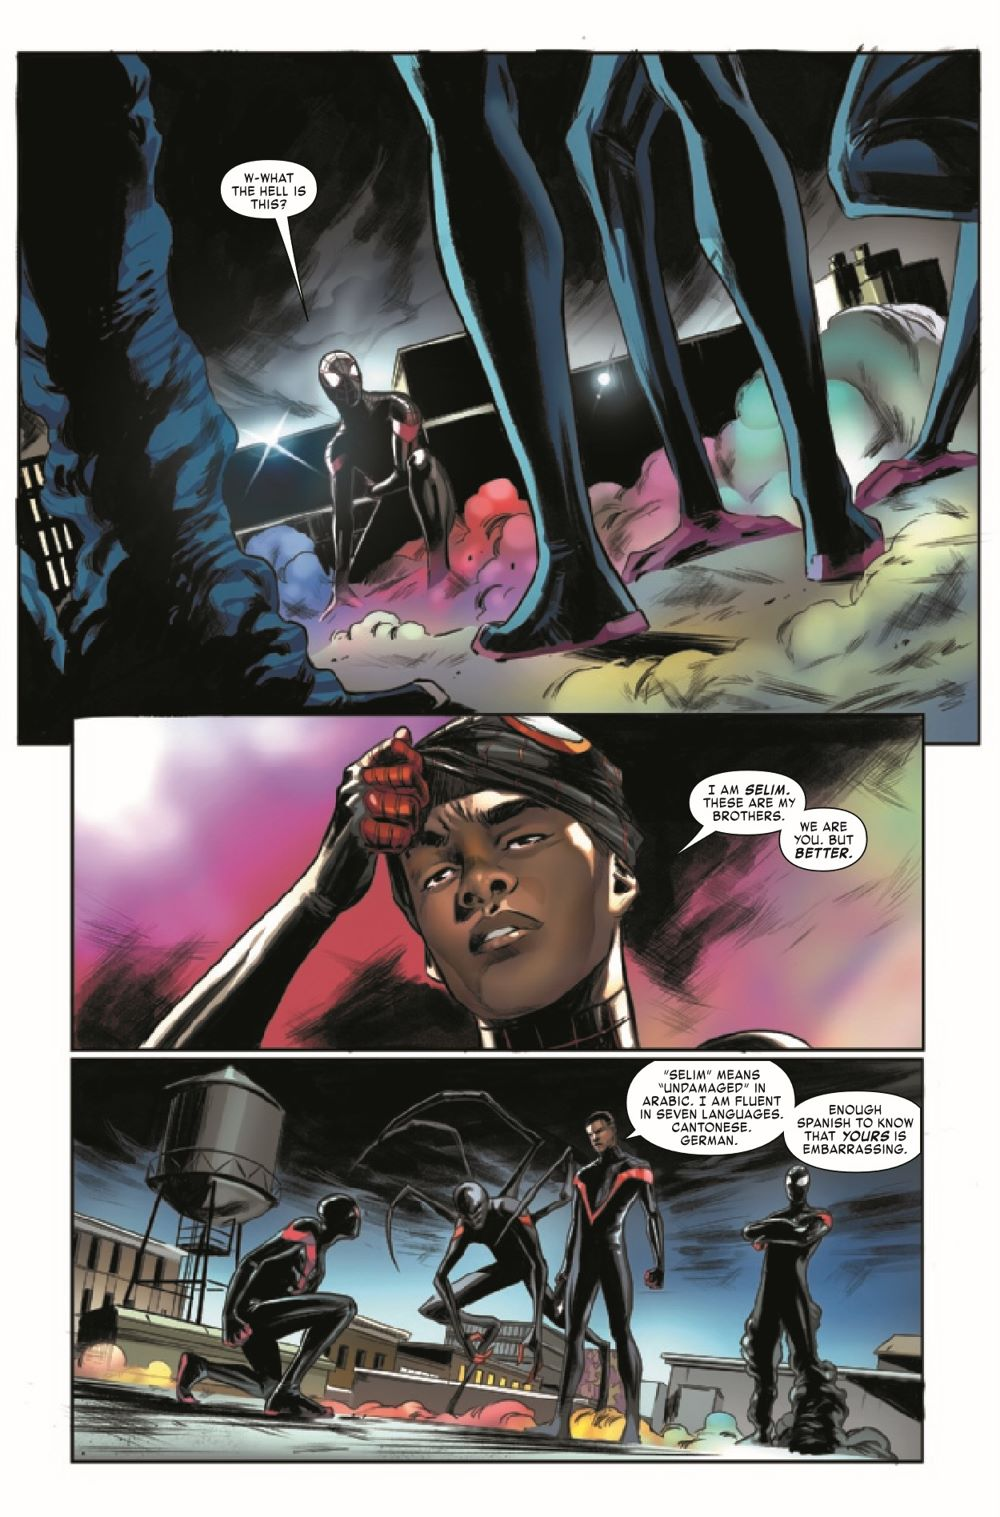 MMSM2018026_Preview-2 ComicList Previews: MILES MORALES SPIDER-MAN #26